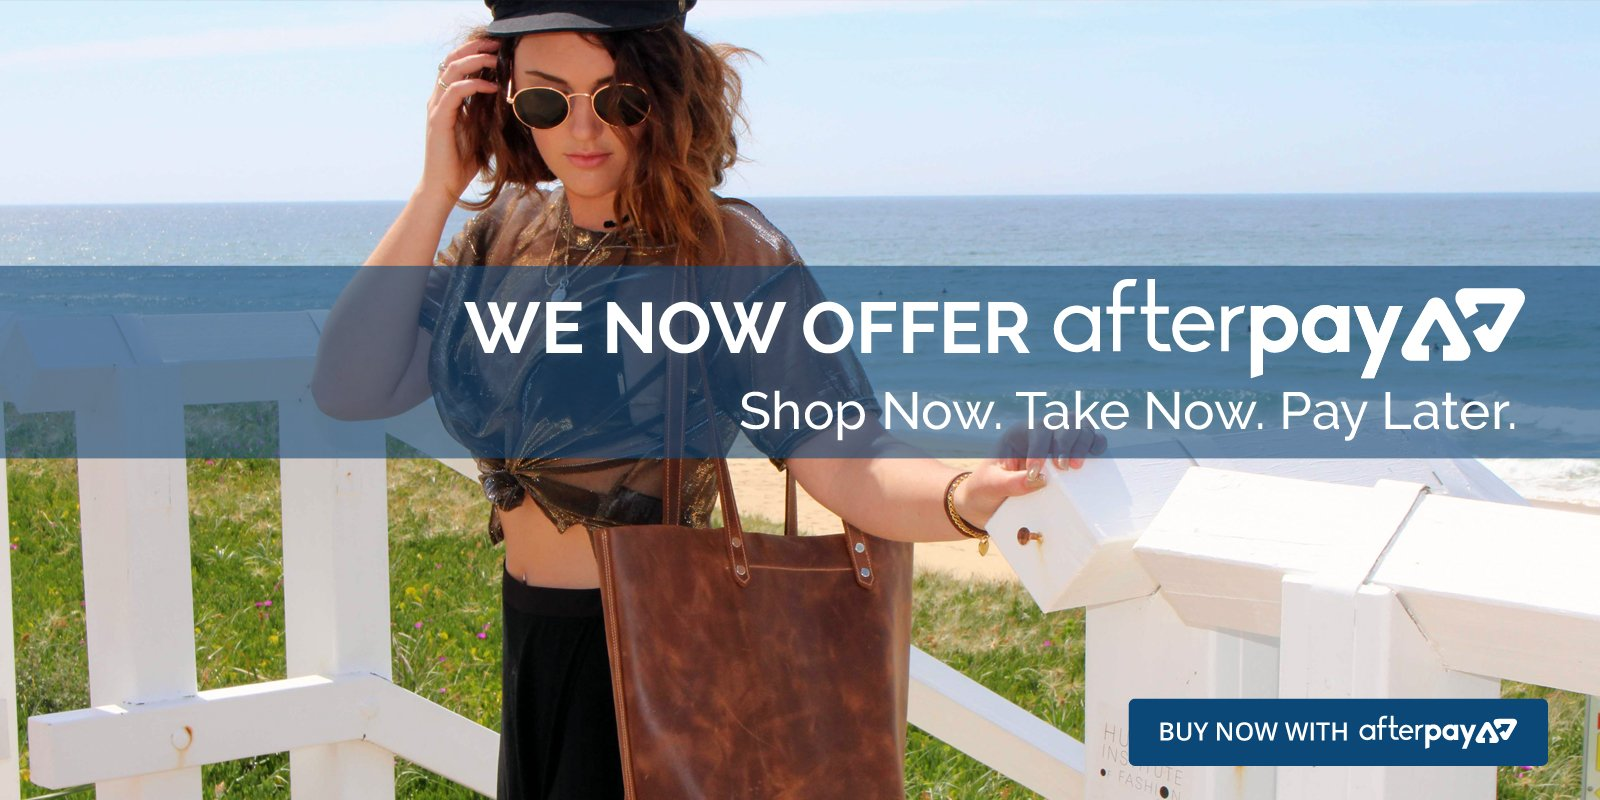 Aussie Bush Leather now offer Afterpay